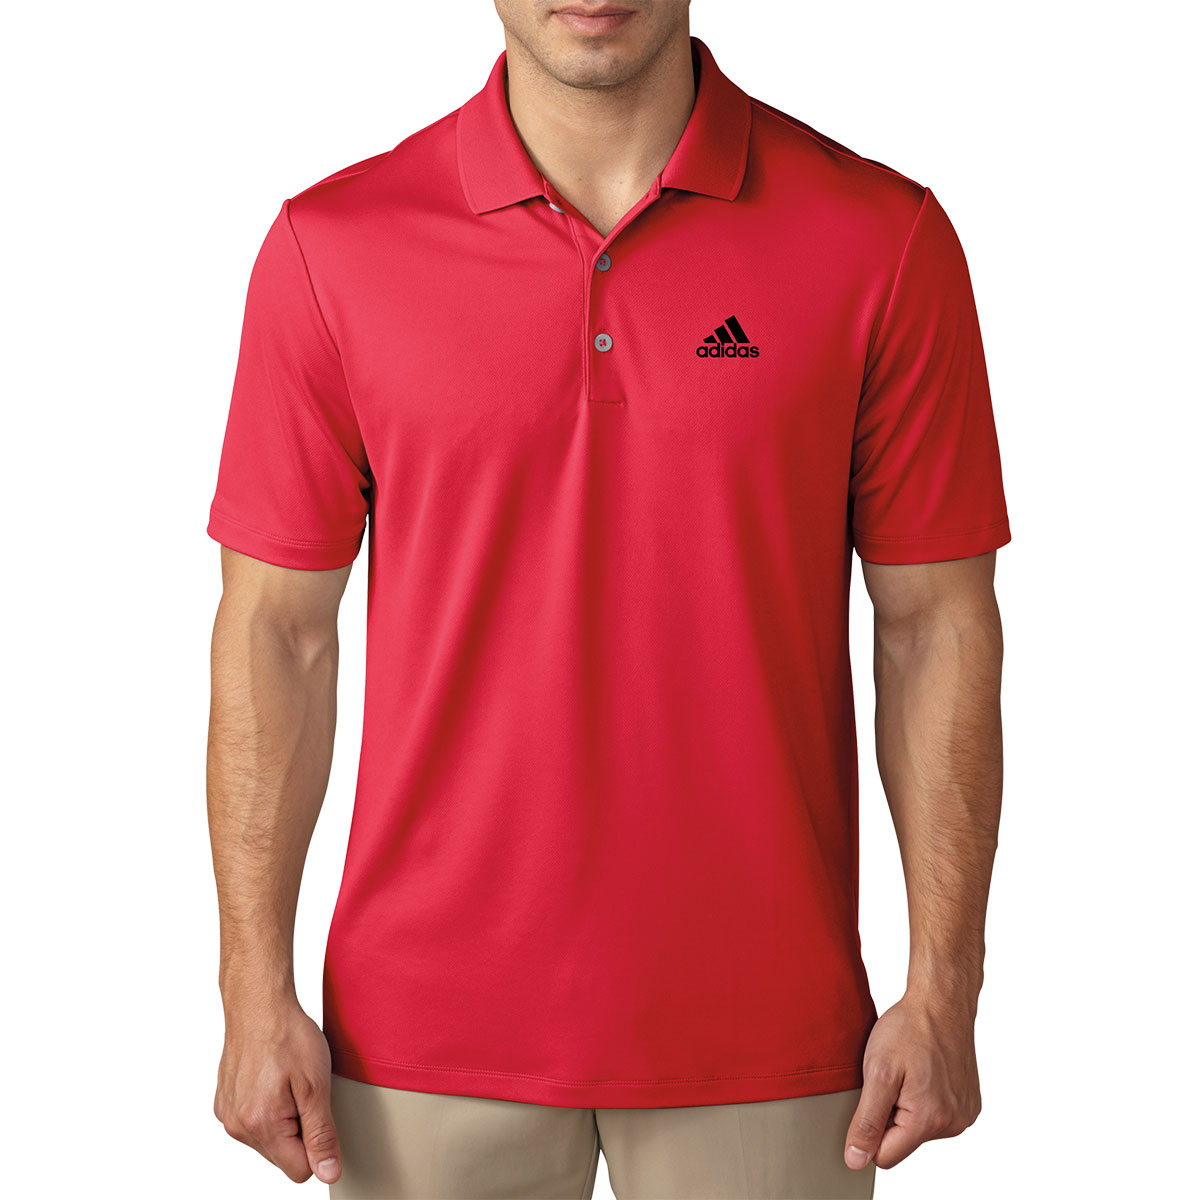 Adidas golf mens performance lc logo polo shirt for Polo shirts with logos